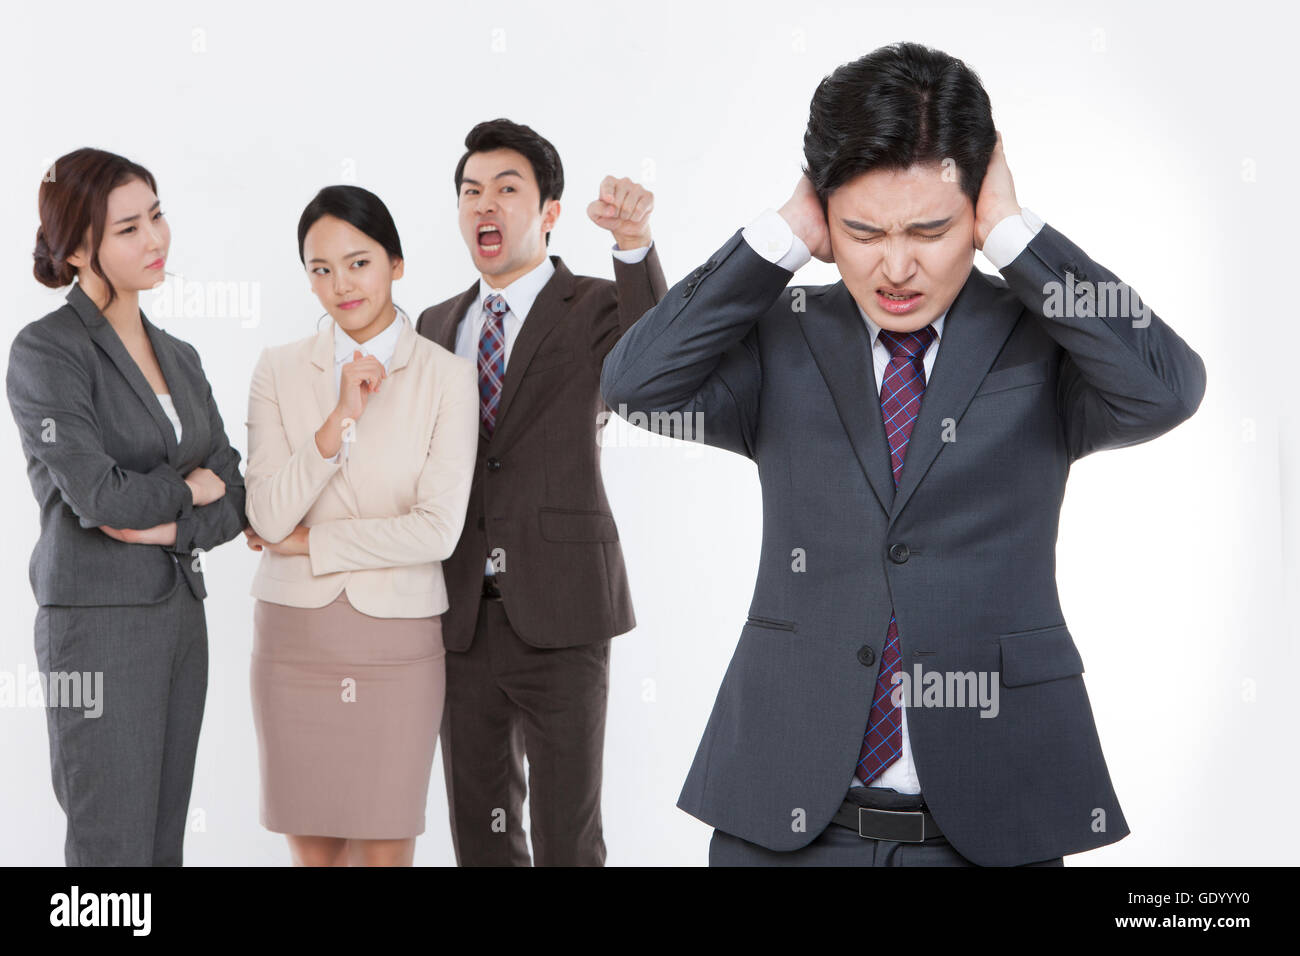 One stressful business man excluded by his coworkers - Stock Image